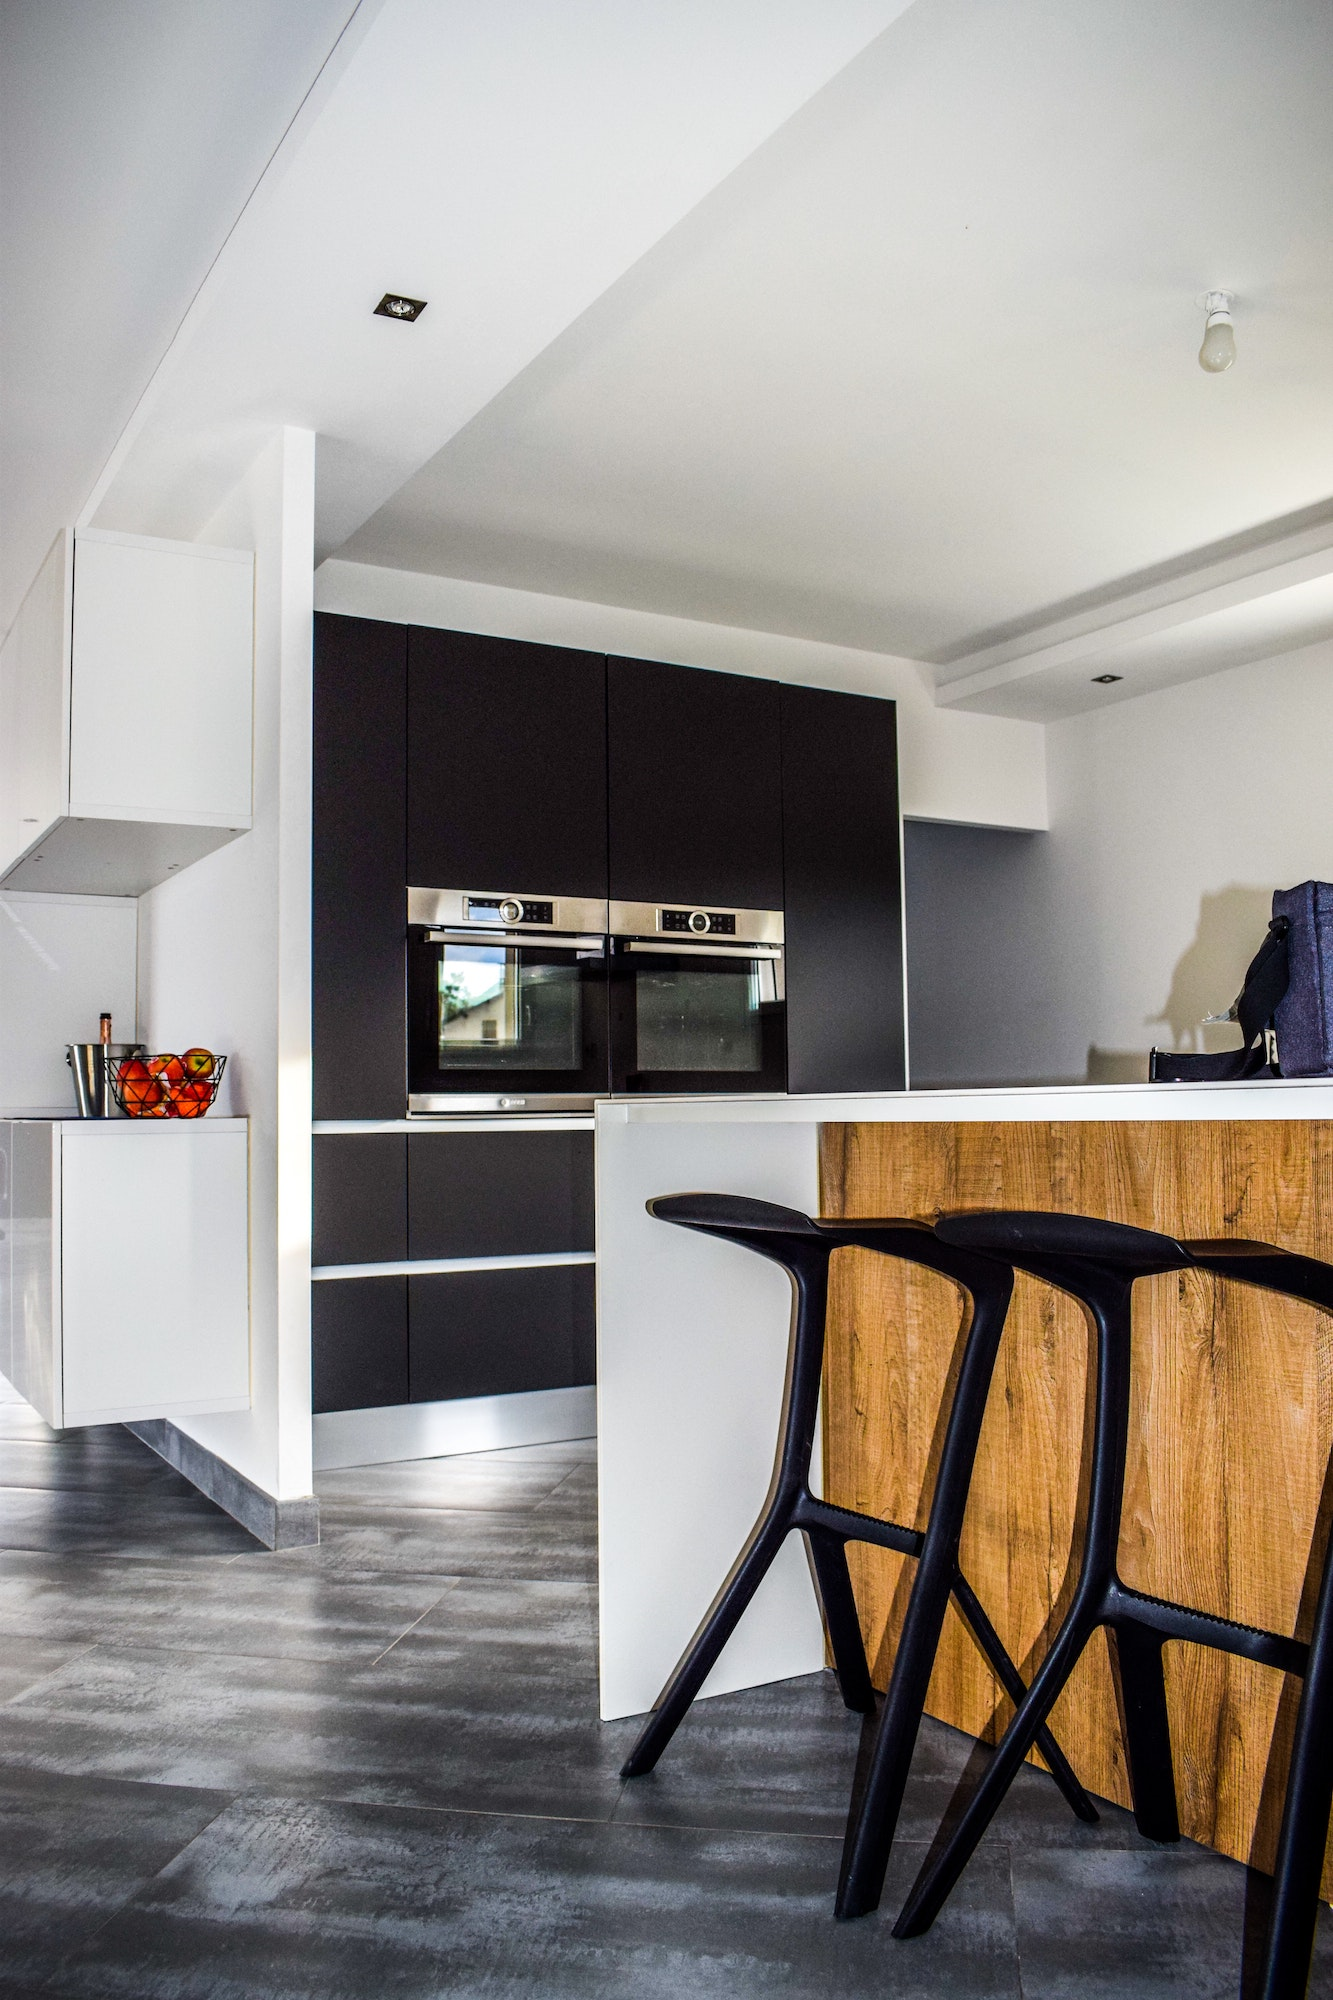 How to Save Money or Stick to a Budget When Remodelling Your Kitchen   Home Interiors   Elle Blonde Luxury Lifestyle Destination Blog